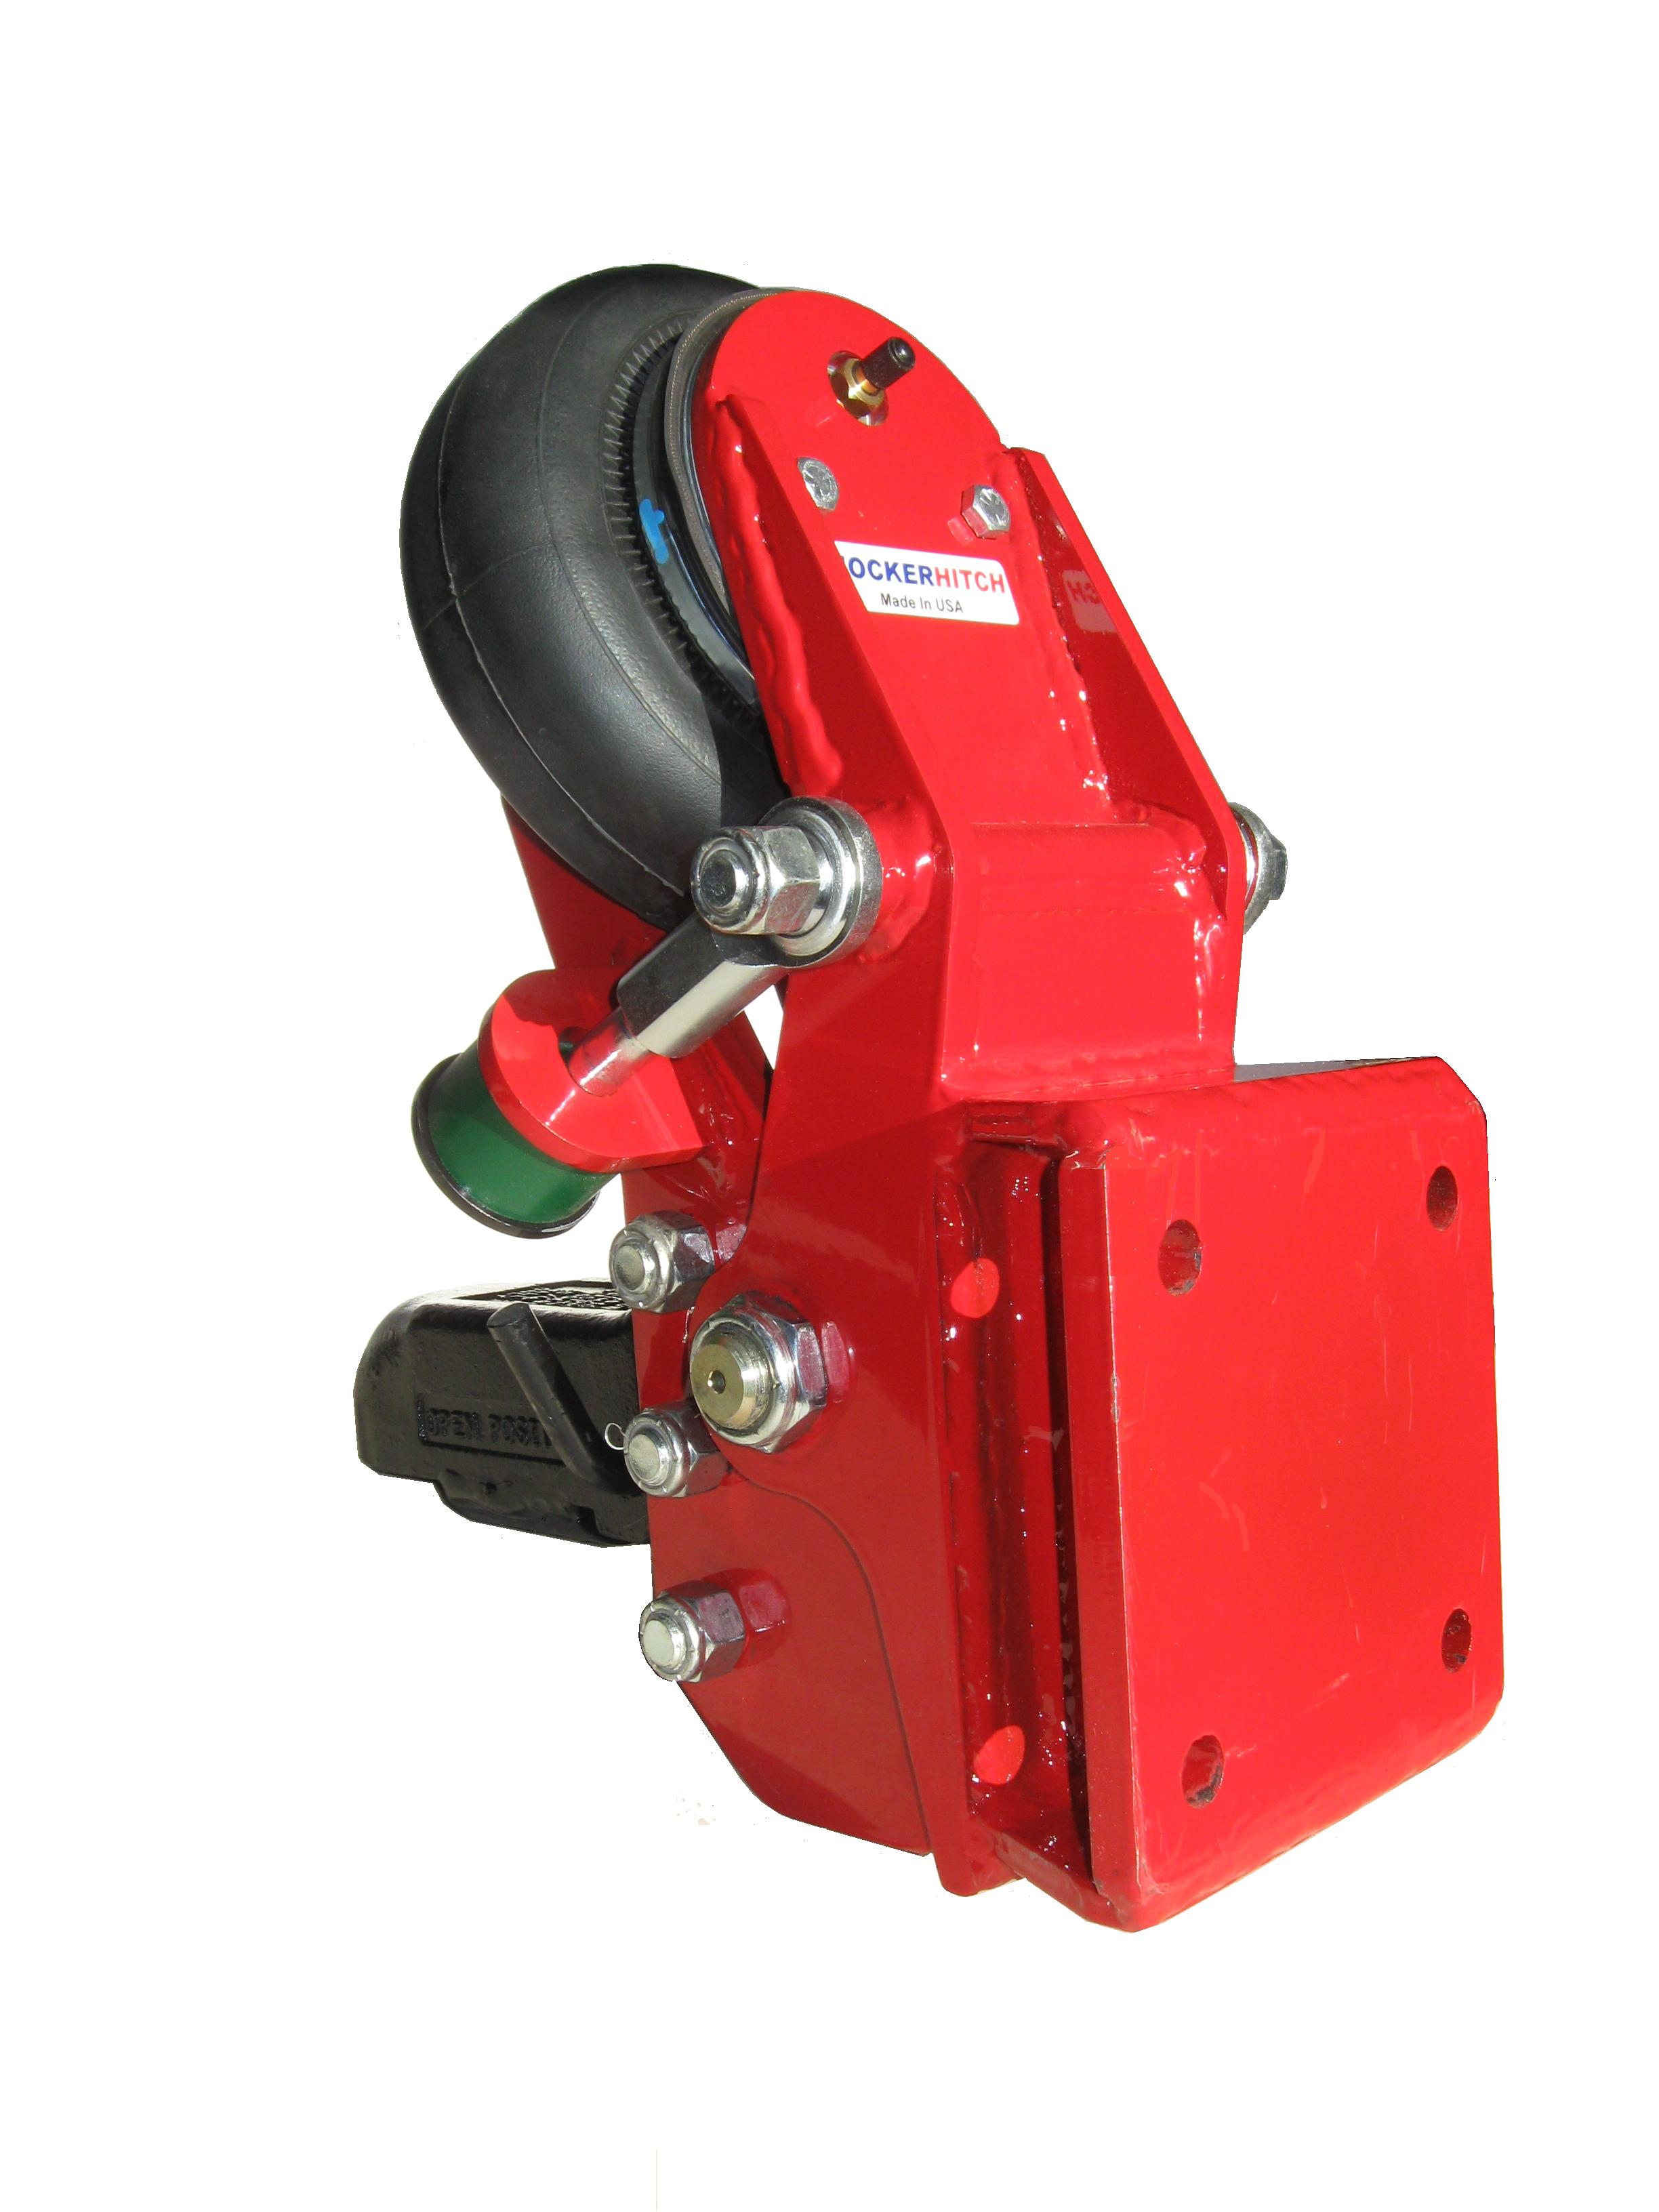 Tongue Mount Industrial Hitch with Square Plate SHHSH-420BC | Tool Discounter